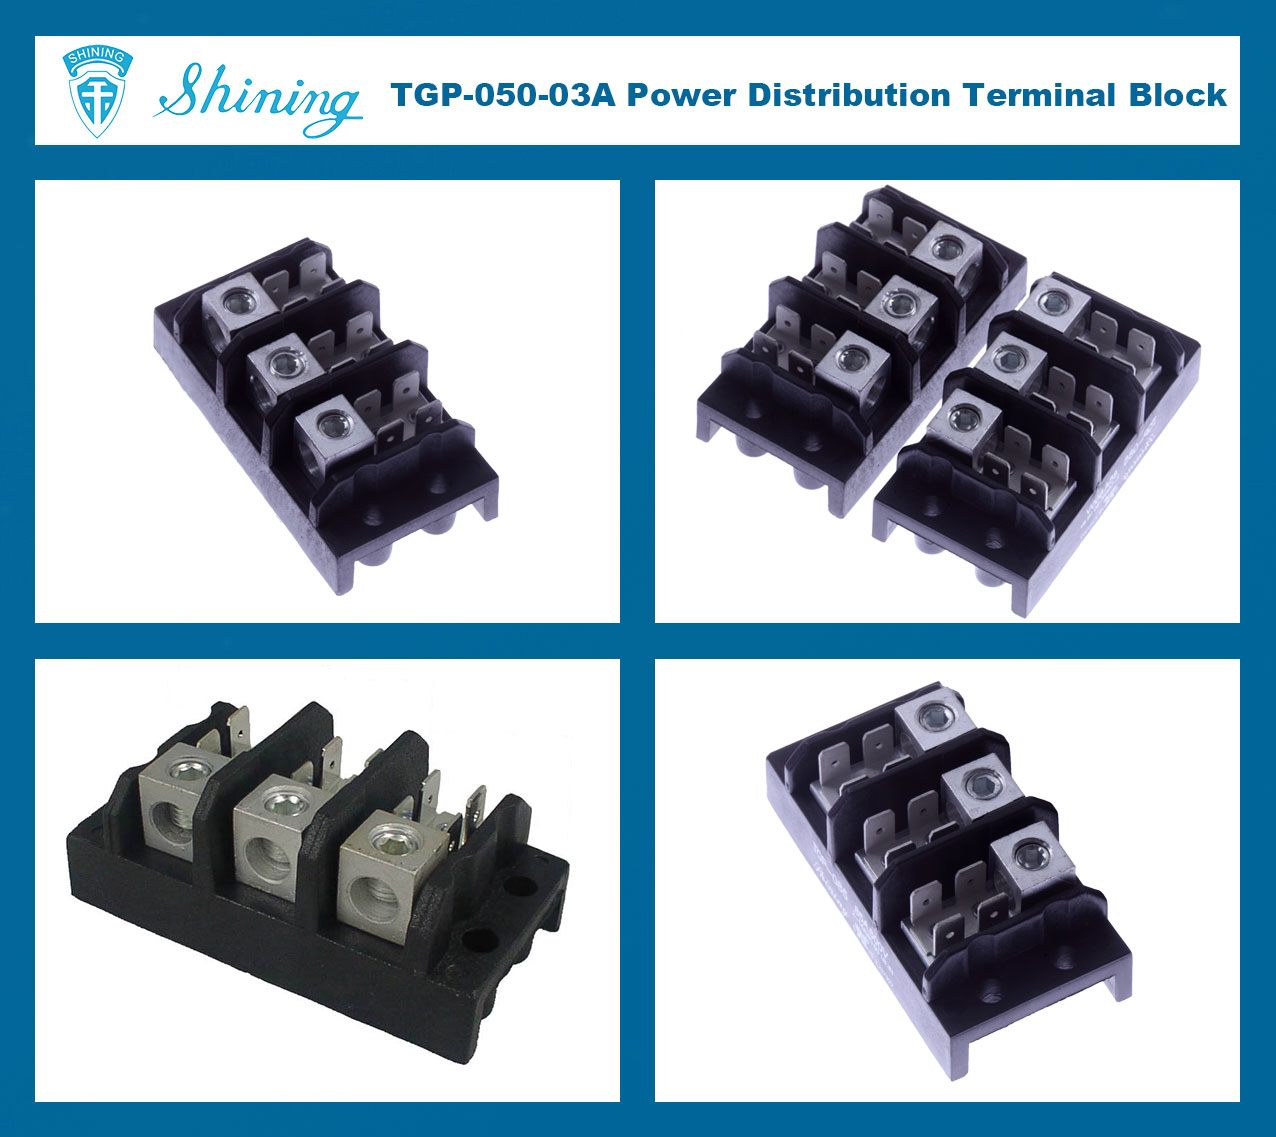 TGP-050-03A 600V 50A 3 Pole Electrical Power Terminal Block